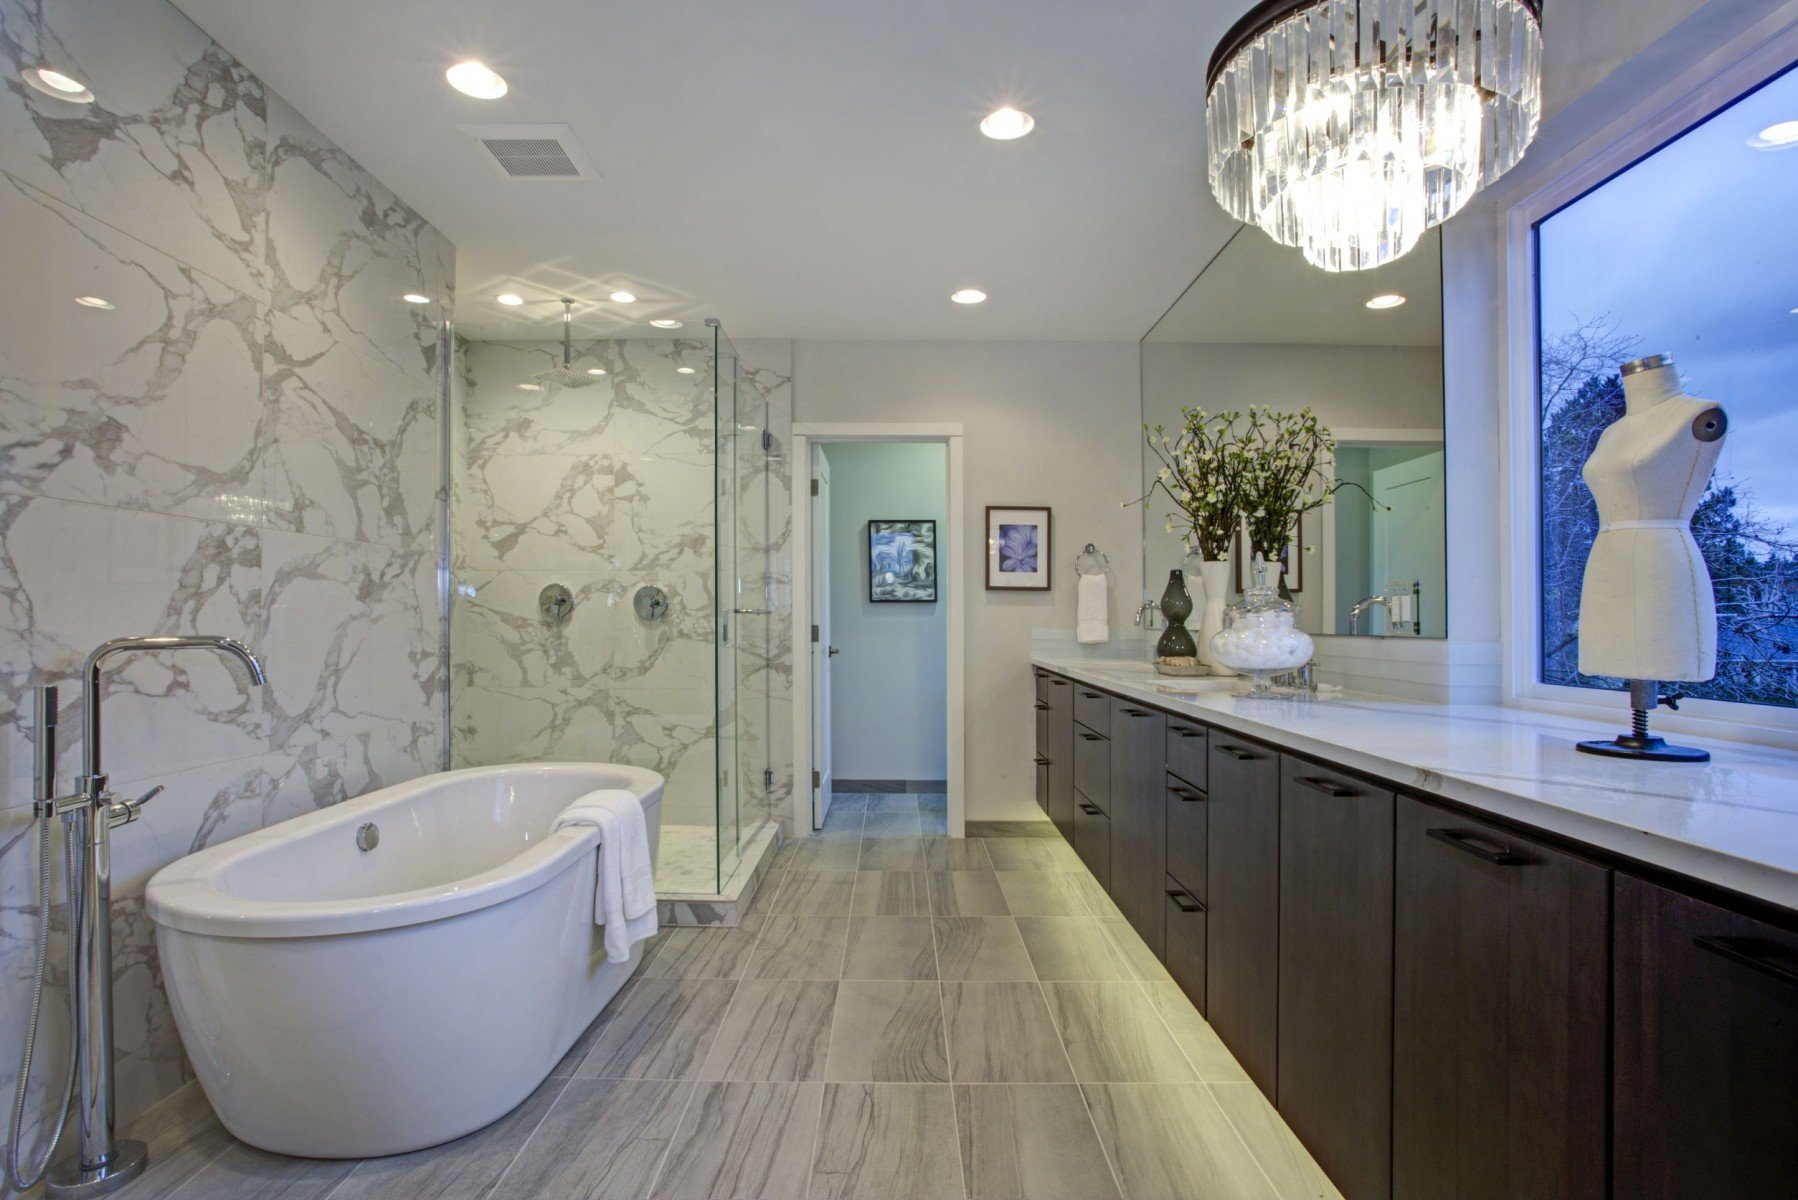 Freestanding Tubs And Walk In Showers Trends In Bathroom